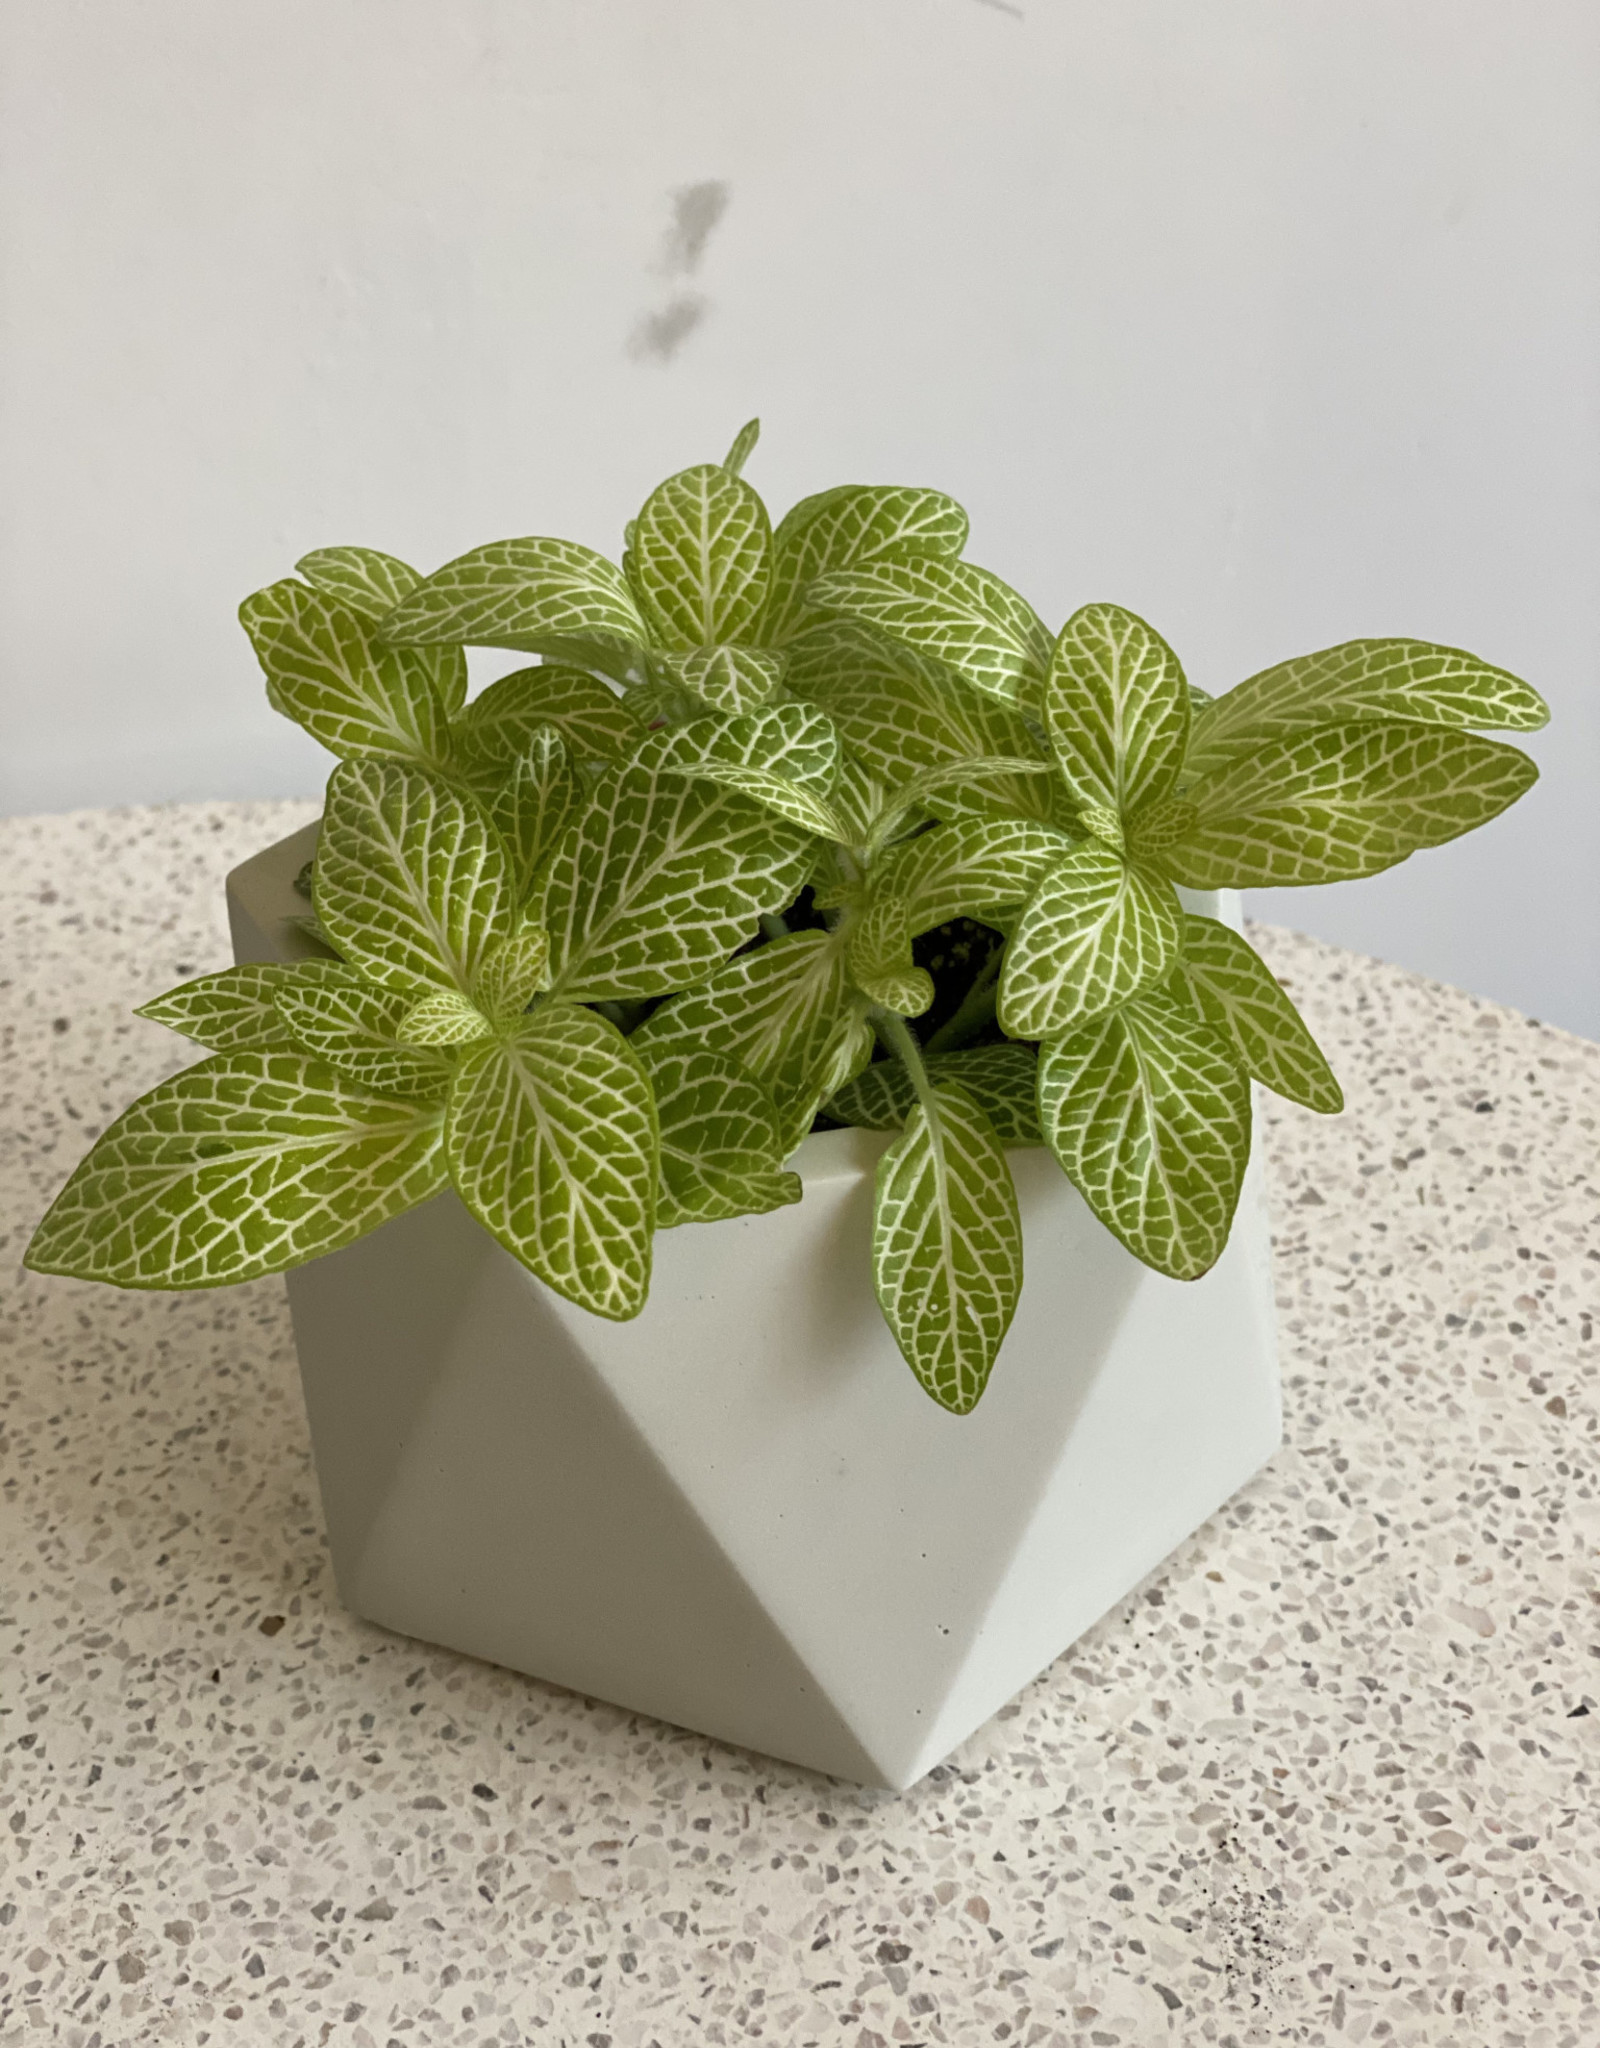 GRUUN Fittonia Specials Joly Lemon ∅8 h10